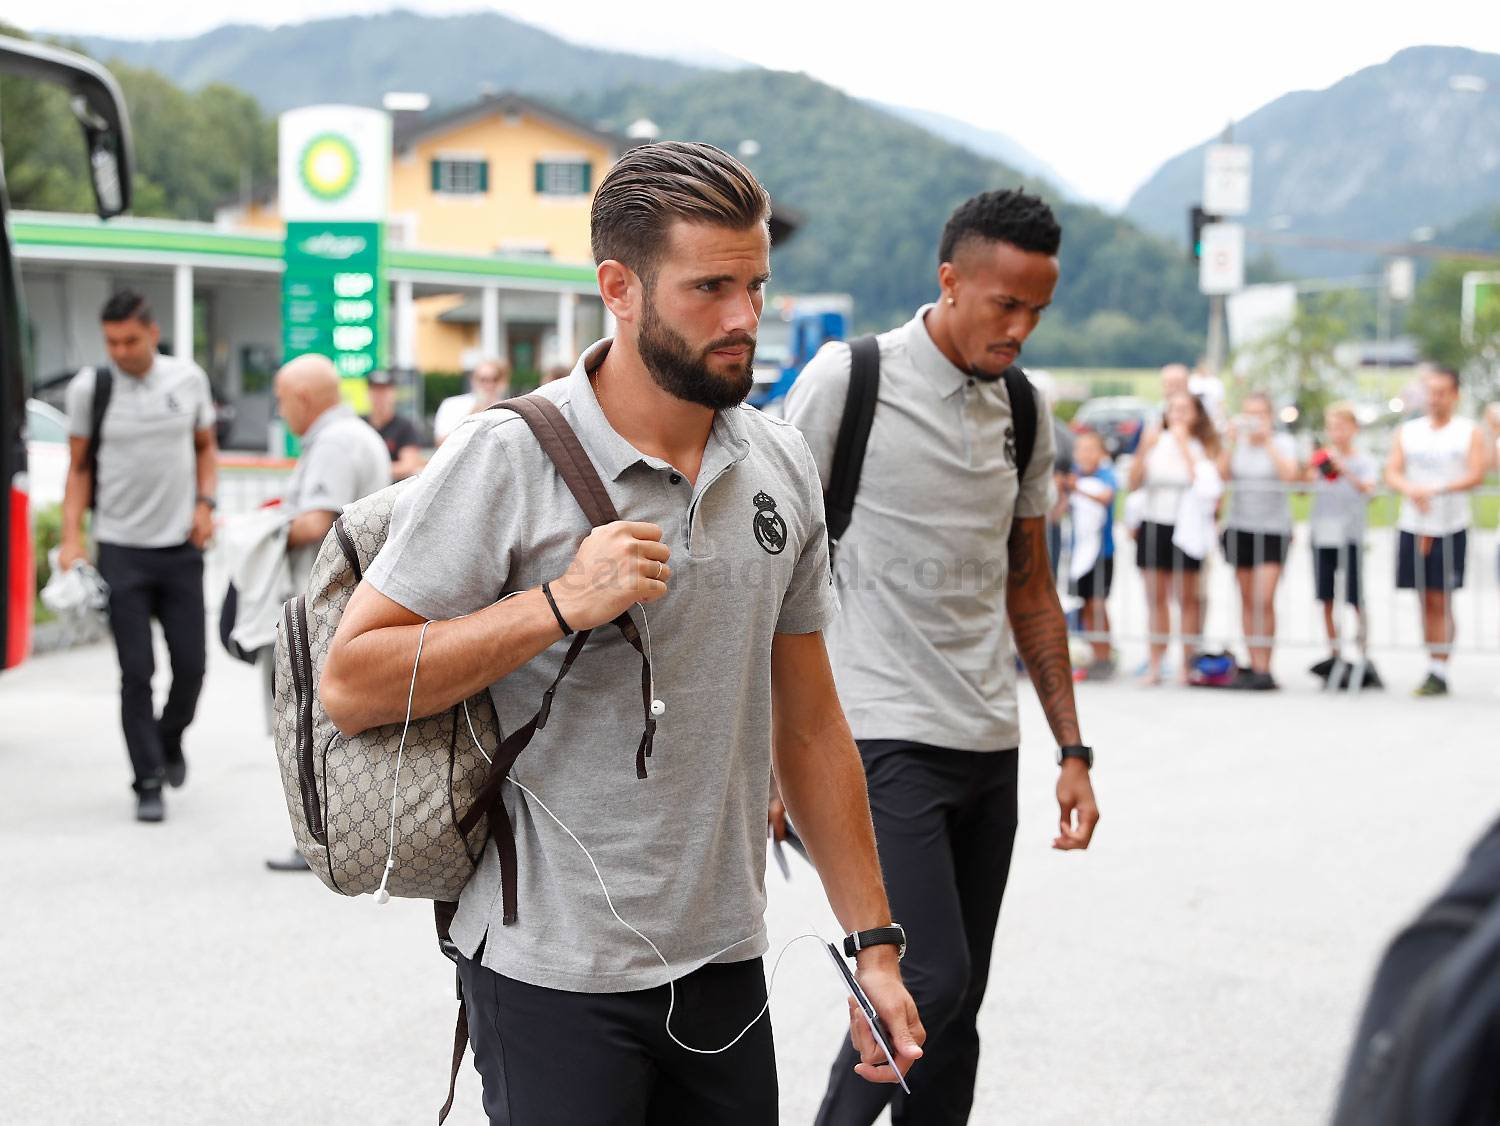 Real Madrid - Llegada del Real Madrid a Salzburgo - 07-08-2019